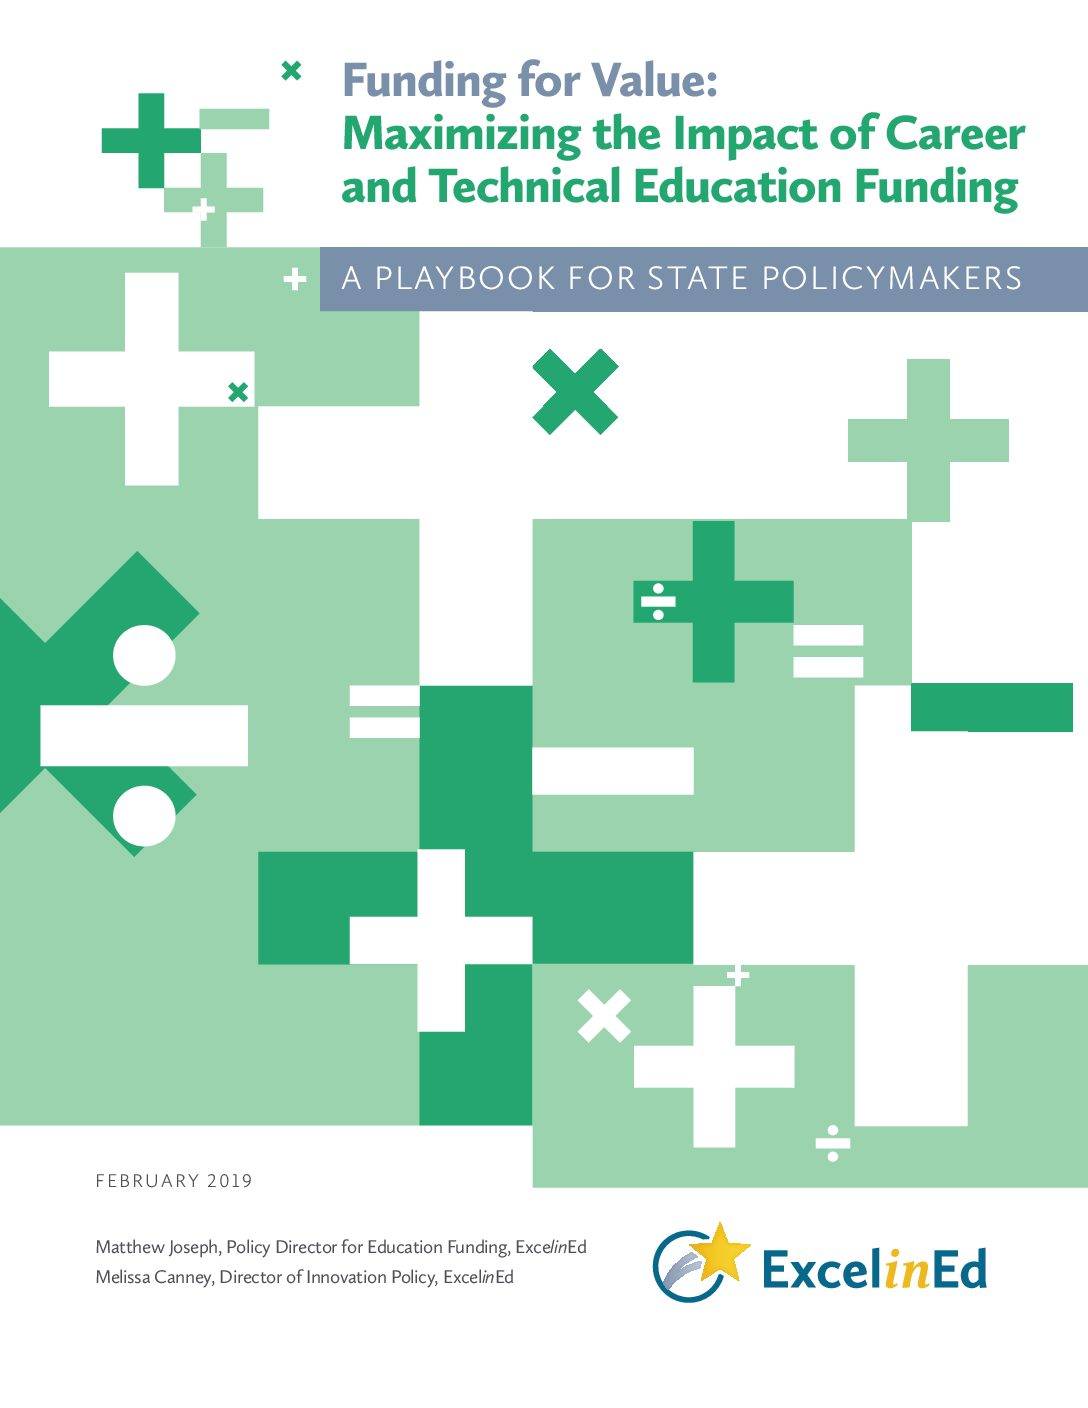 Playbook 4: Funding for Value: Maximizing the Impact of CTE Funding &#8211; February 2019>									 									</a> 									<a href=